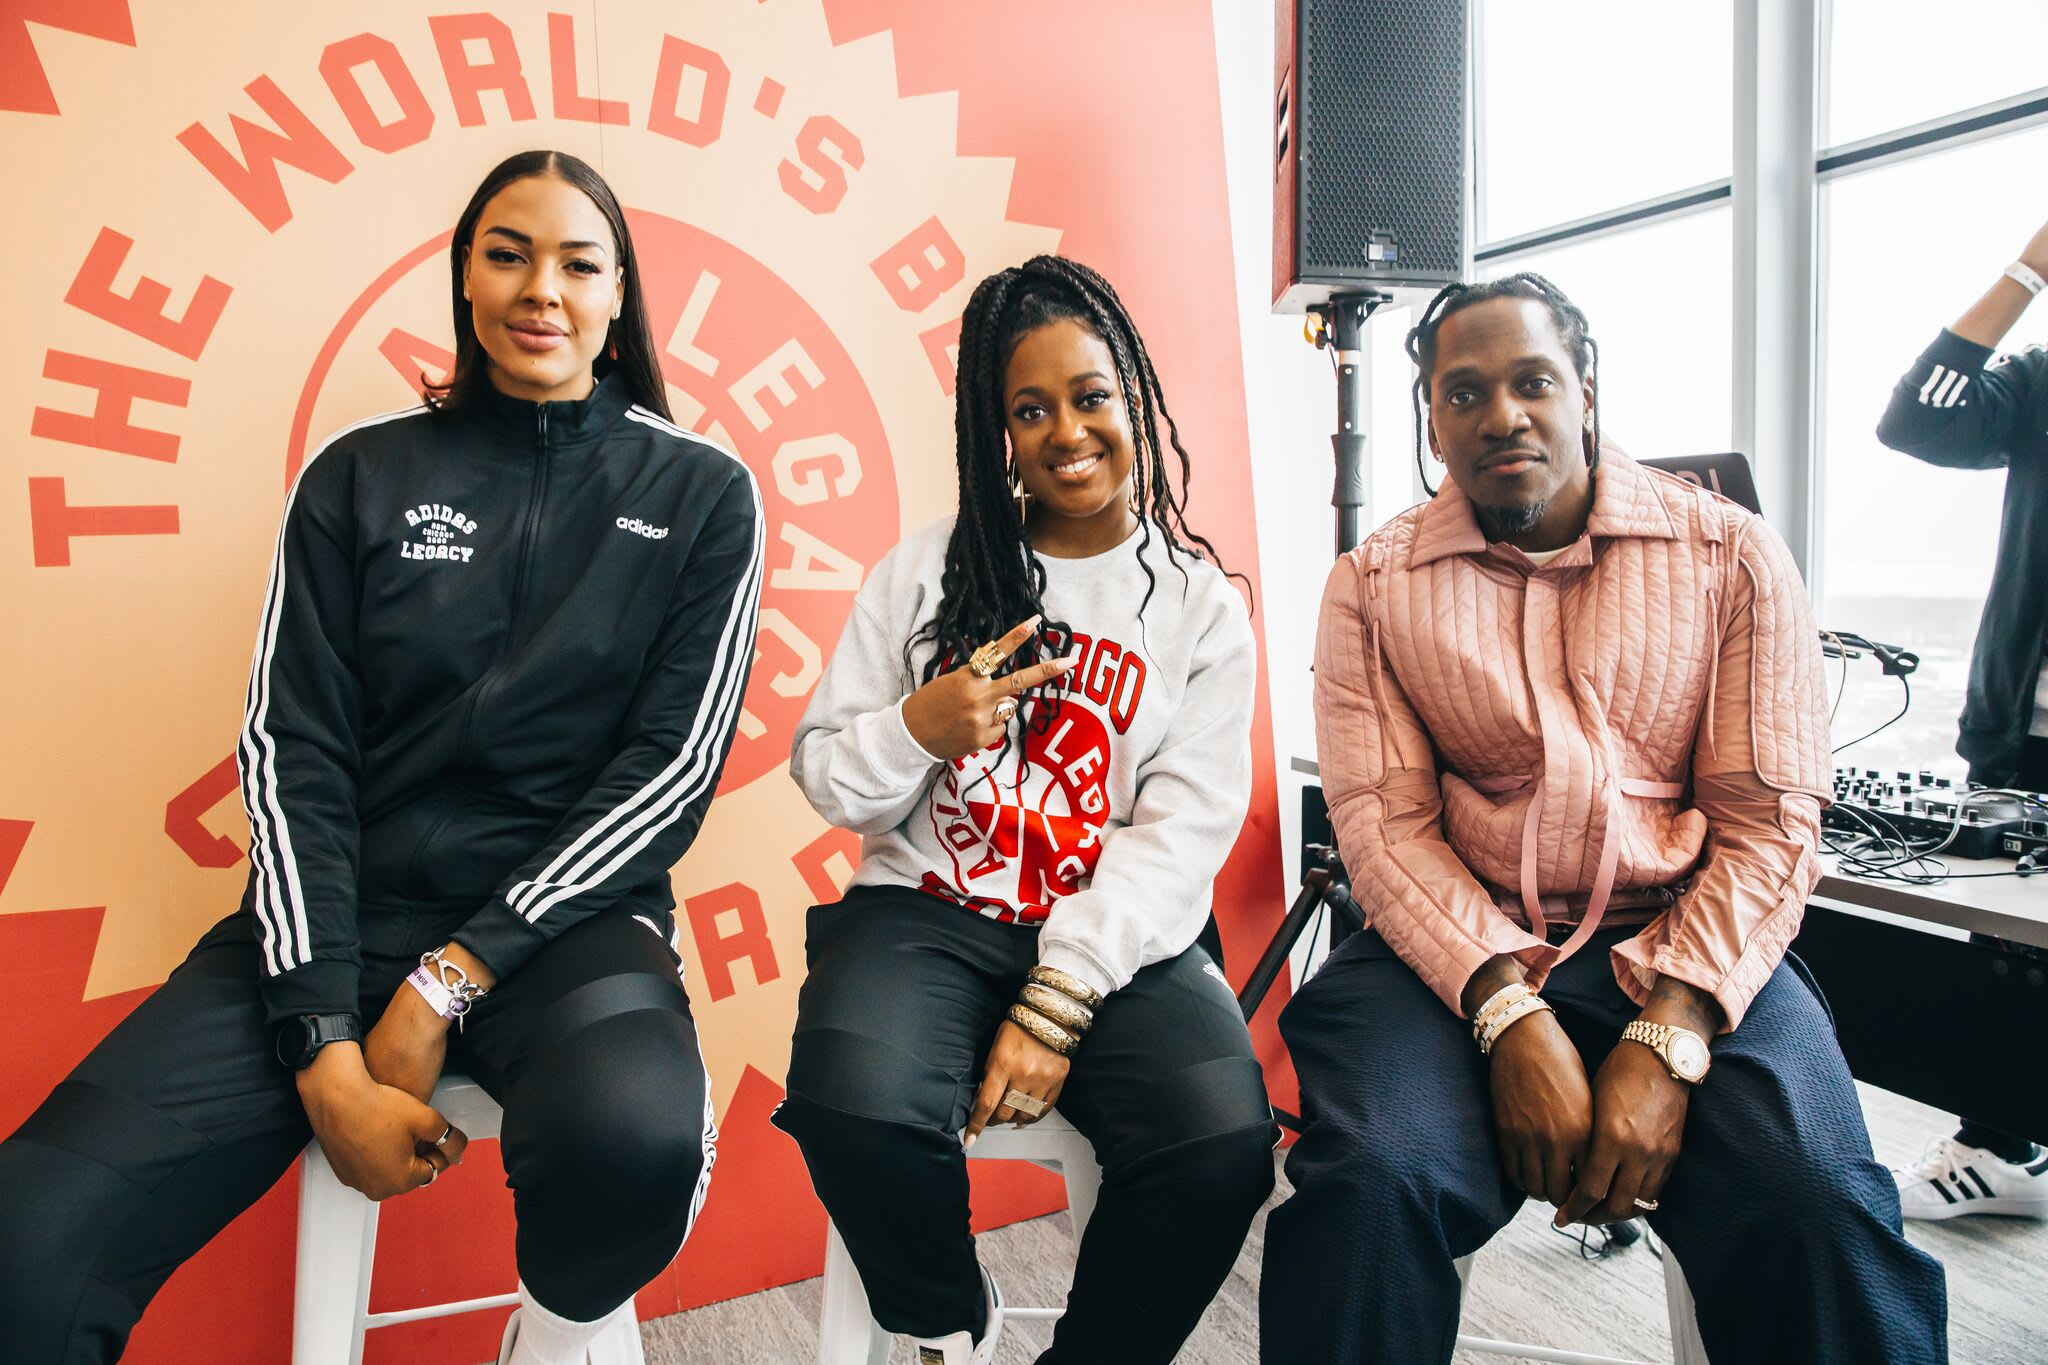 Adidas World's Best Career Day Liz Cambage Rapsody Pusha T